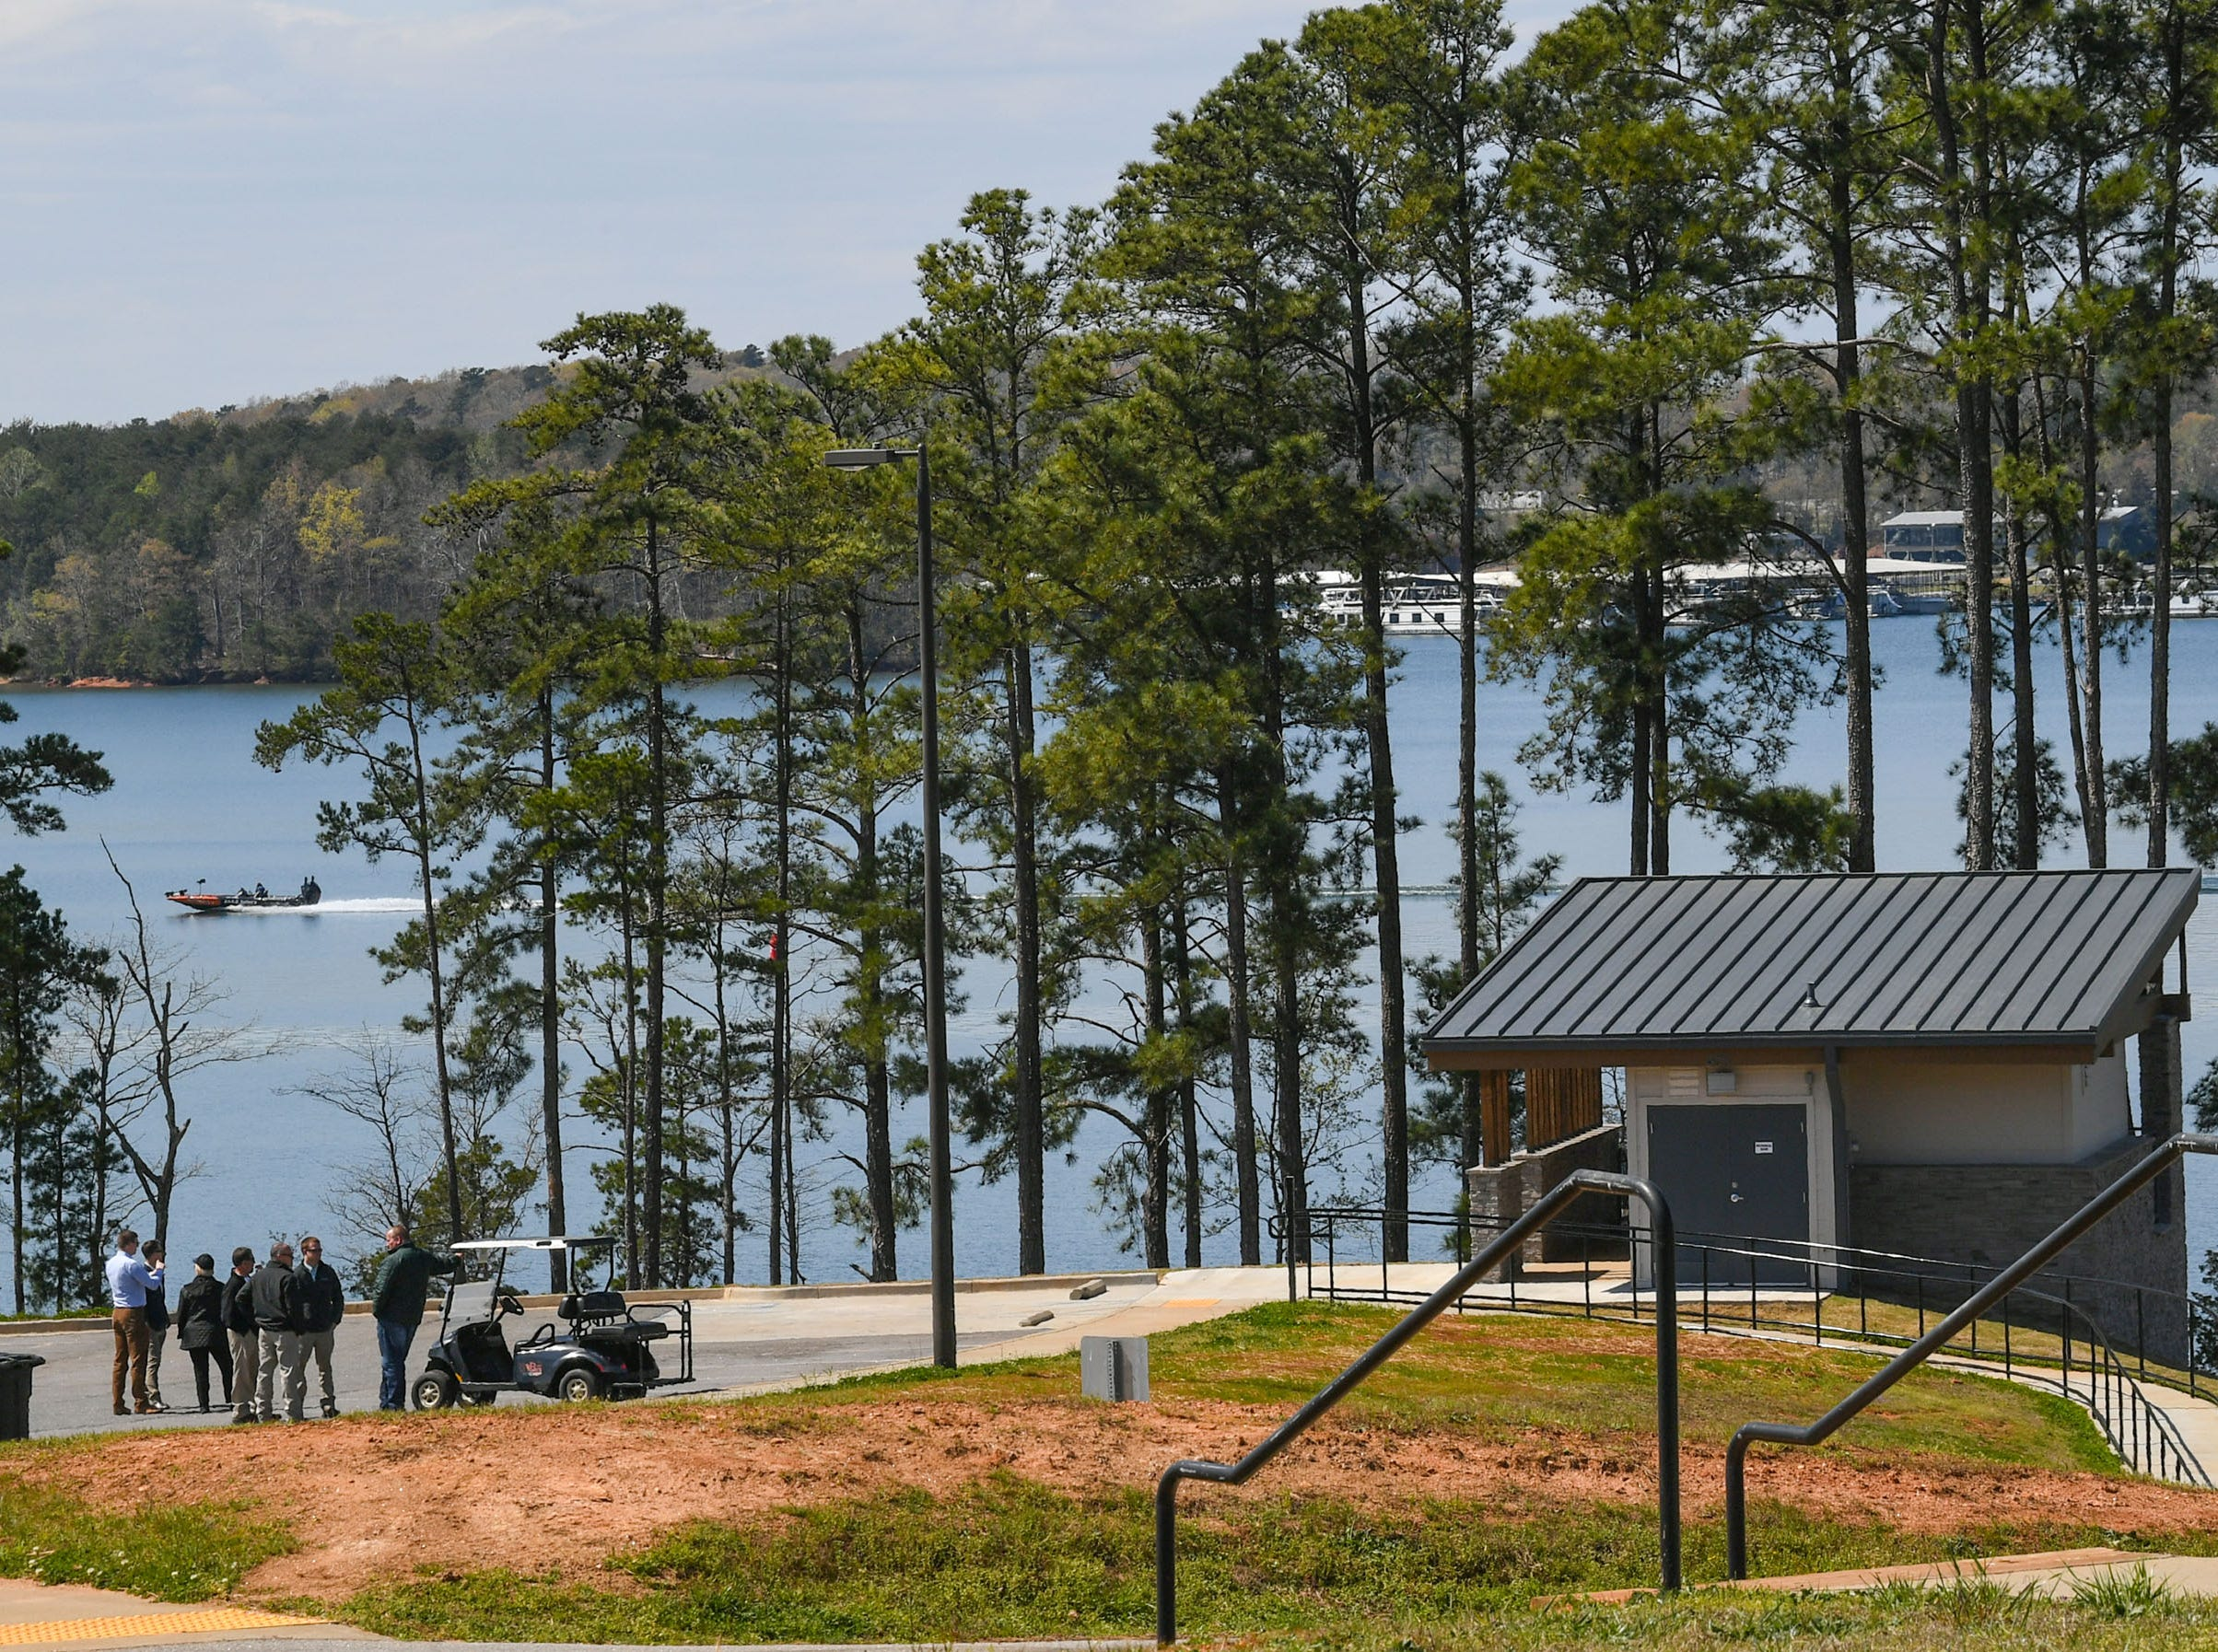 The Green Pond Landing & Event Center Facilities, with ADA compliant restrooms and ramps, opened with a ceremony in Anderson County Tuesday. The Hartwell Lake boat landing opened in 2014, adding the bathrooms as the second phase of construction for $425,000, with an amphitheater soon to be built by the county next to it, says administrator Rusty Burns.